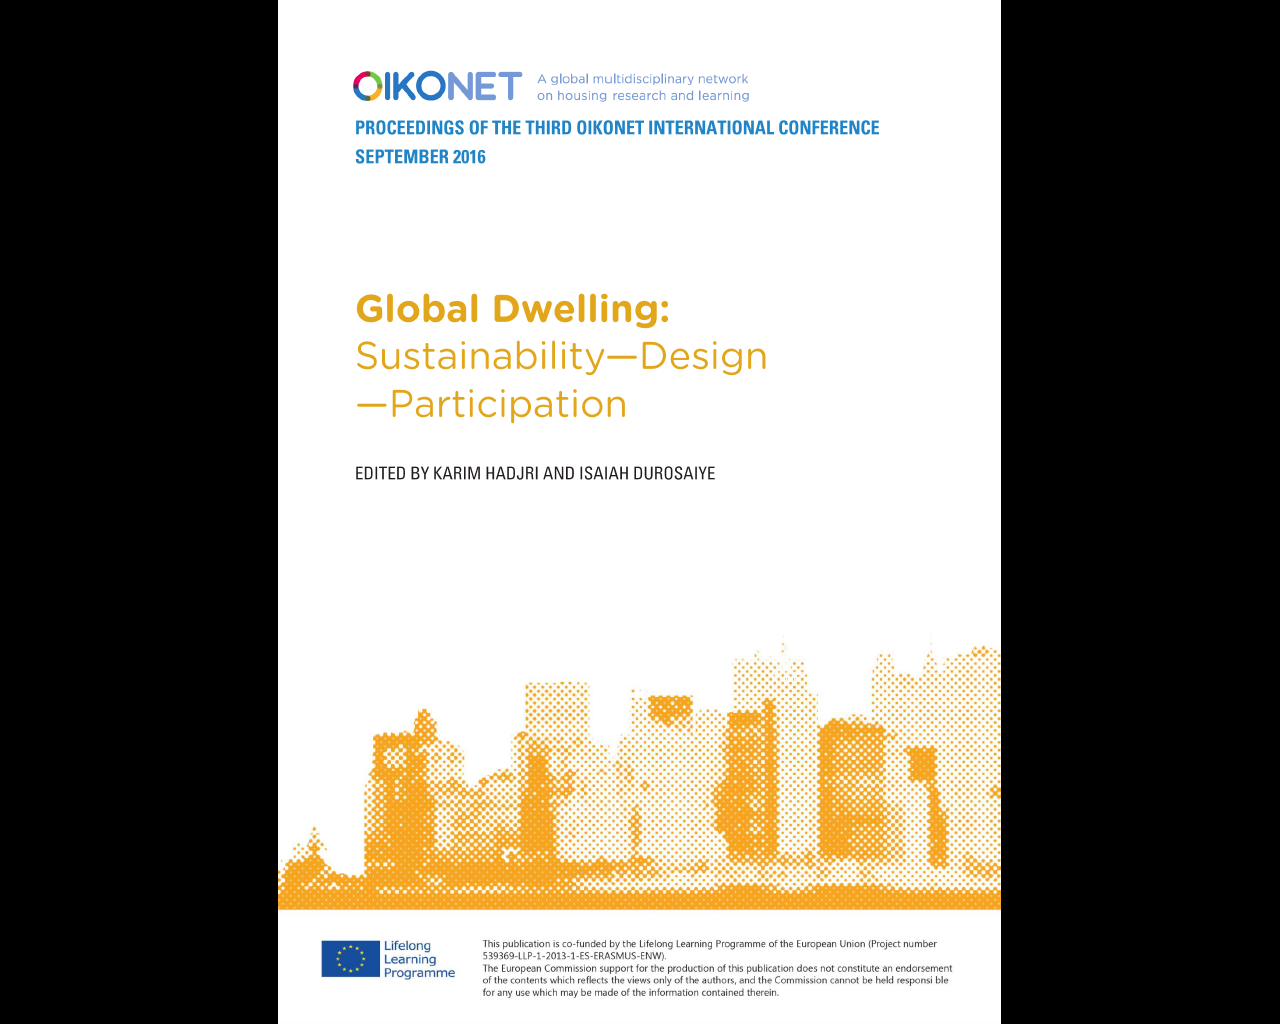 oikonet a global multidisciplinay network on housing research and